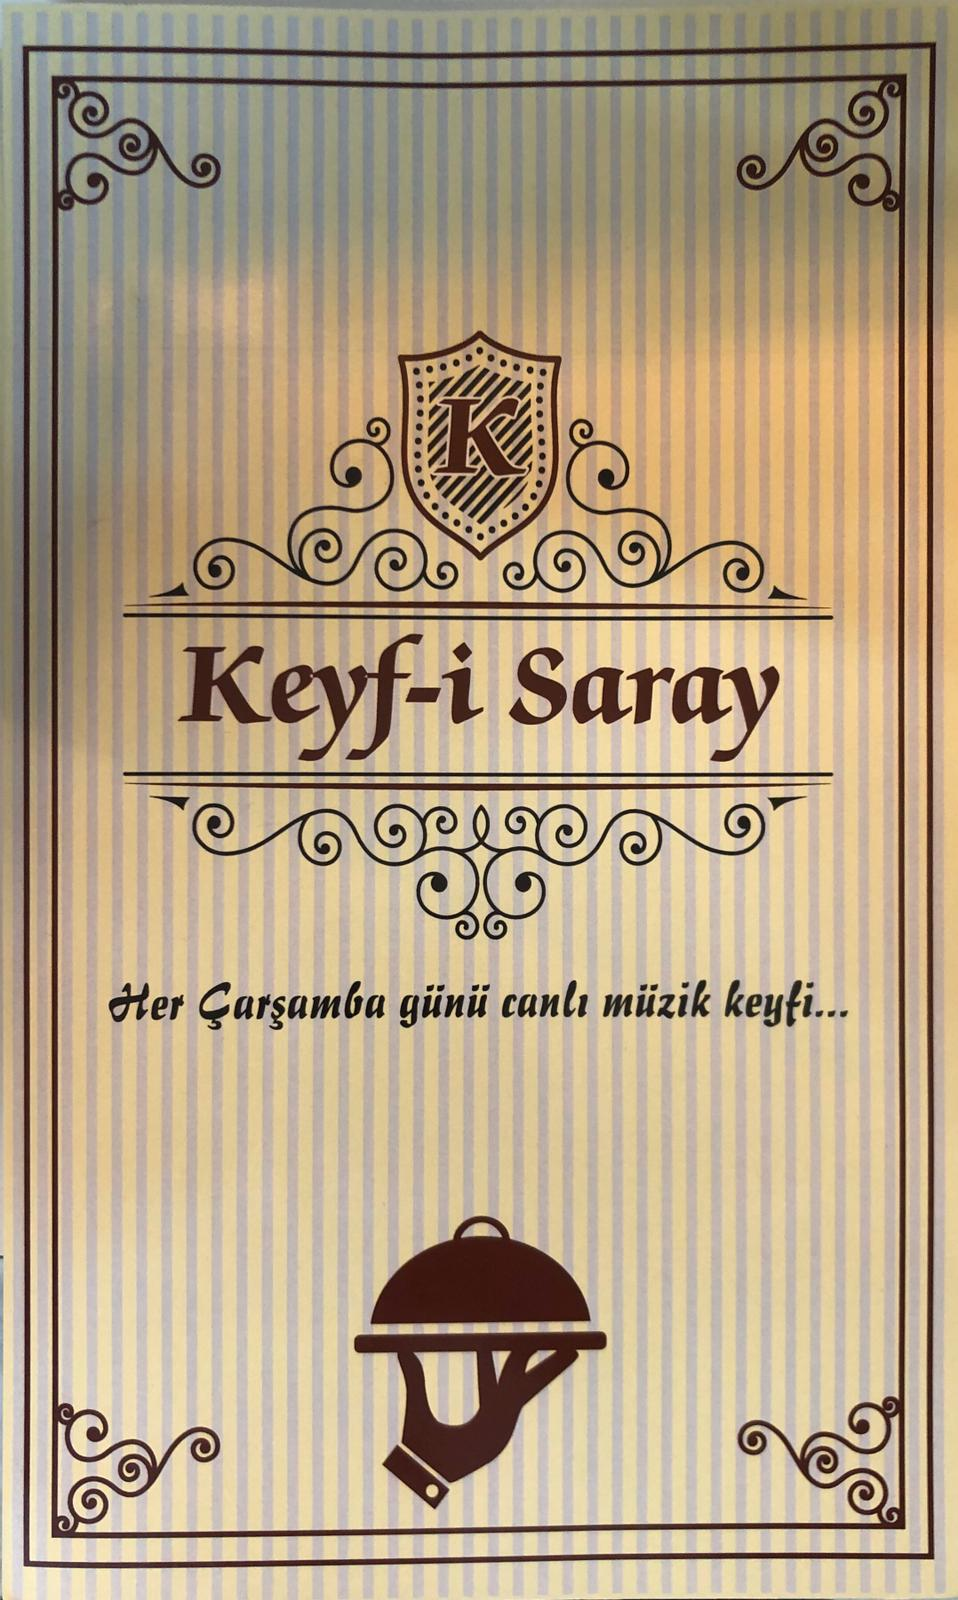 Keyfi Saray Cafe